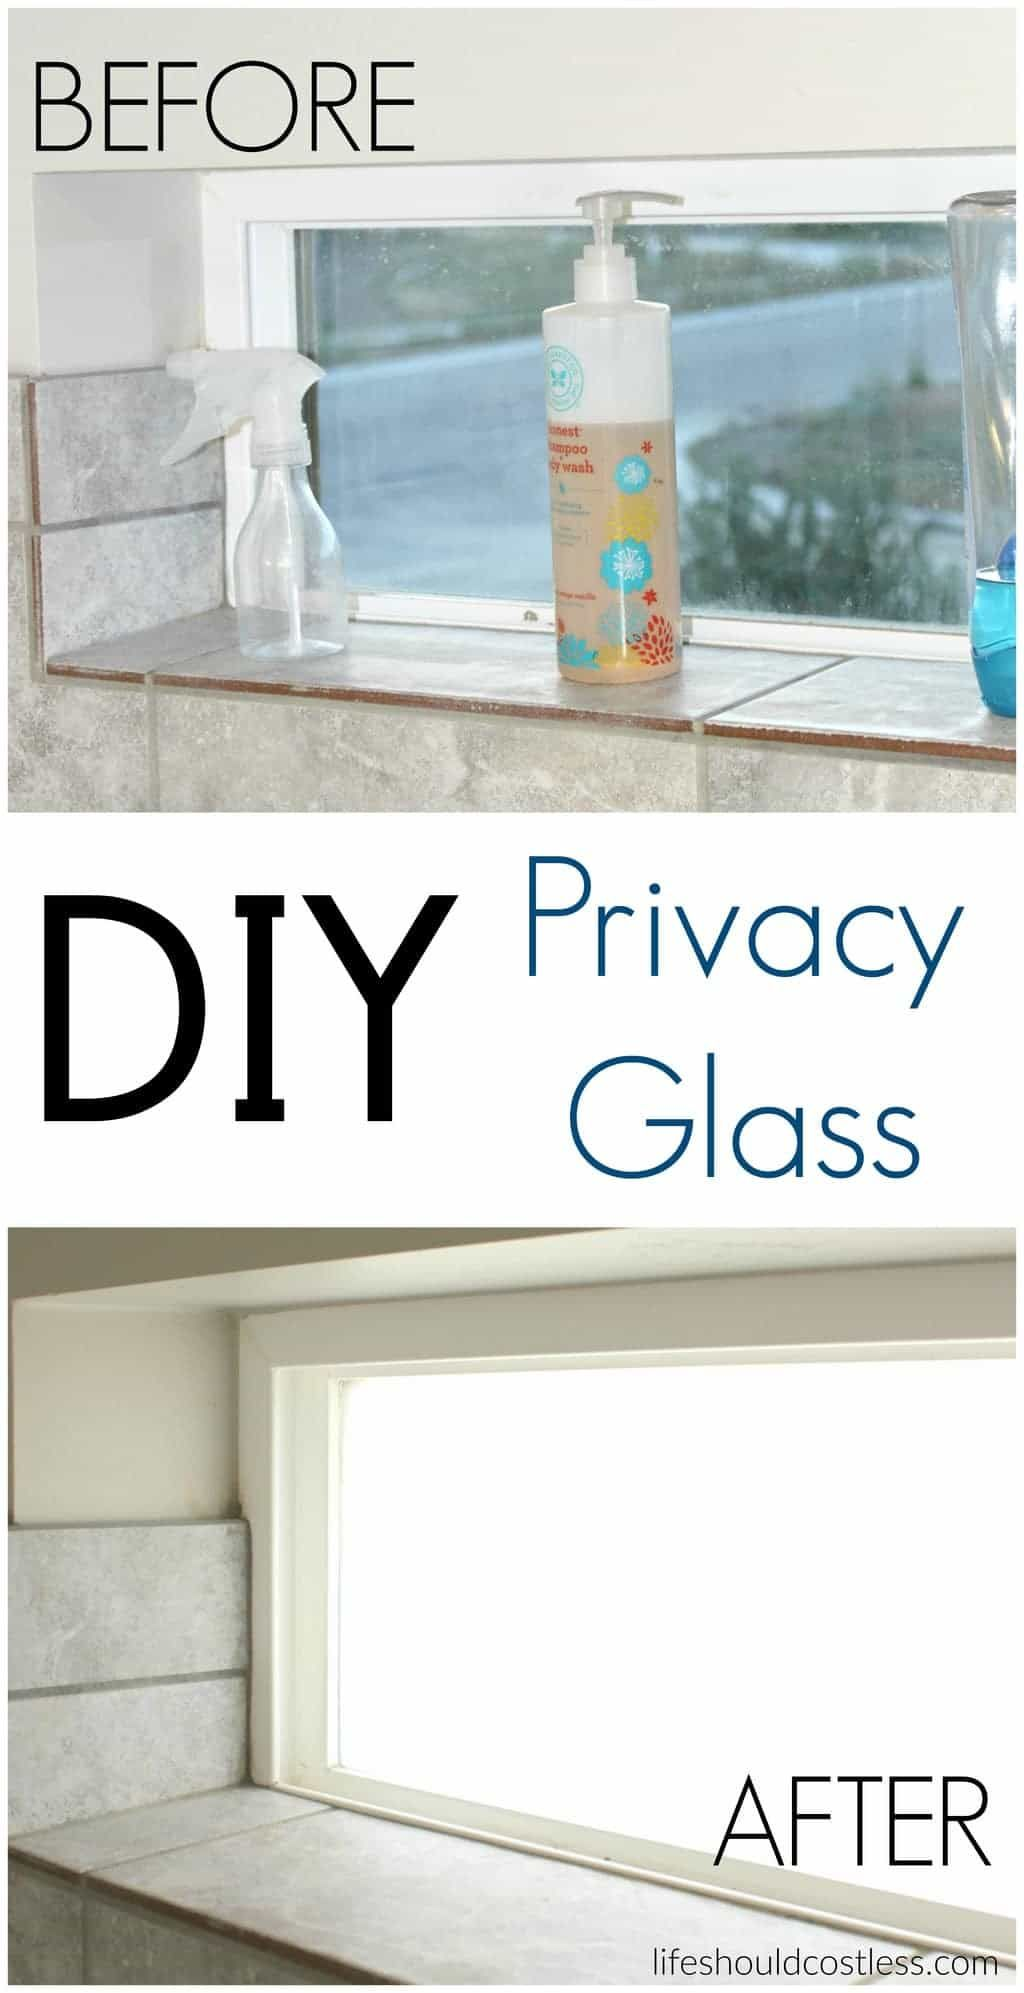 Diy privacy glass it takes less than an hour and can